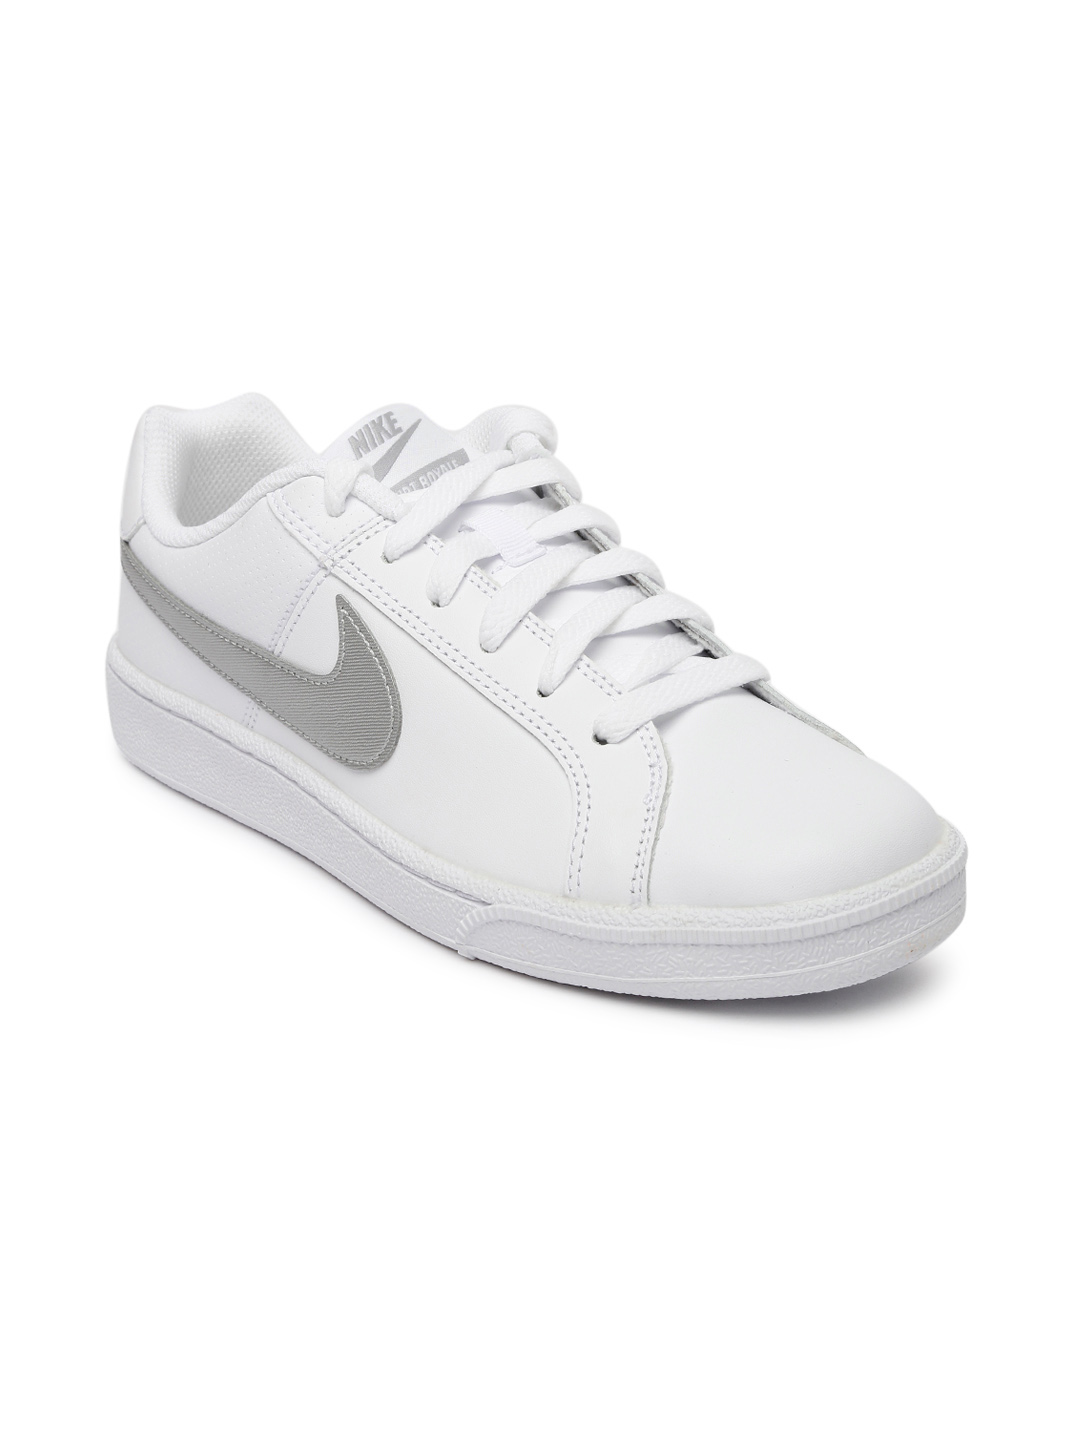 nike shoes for women white